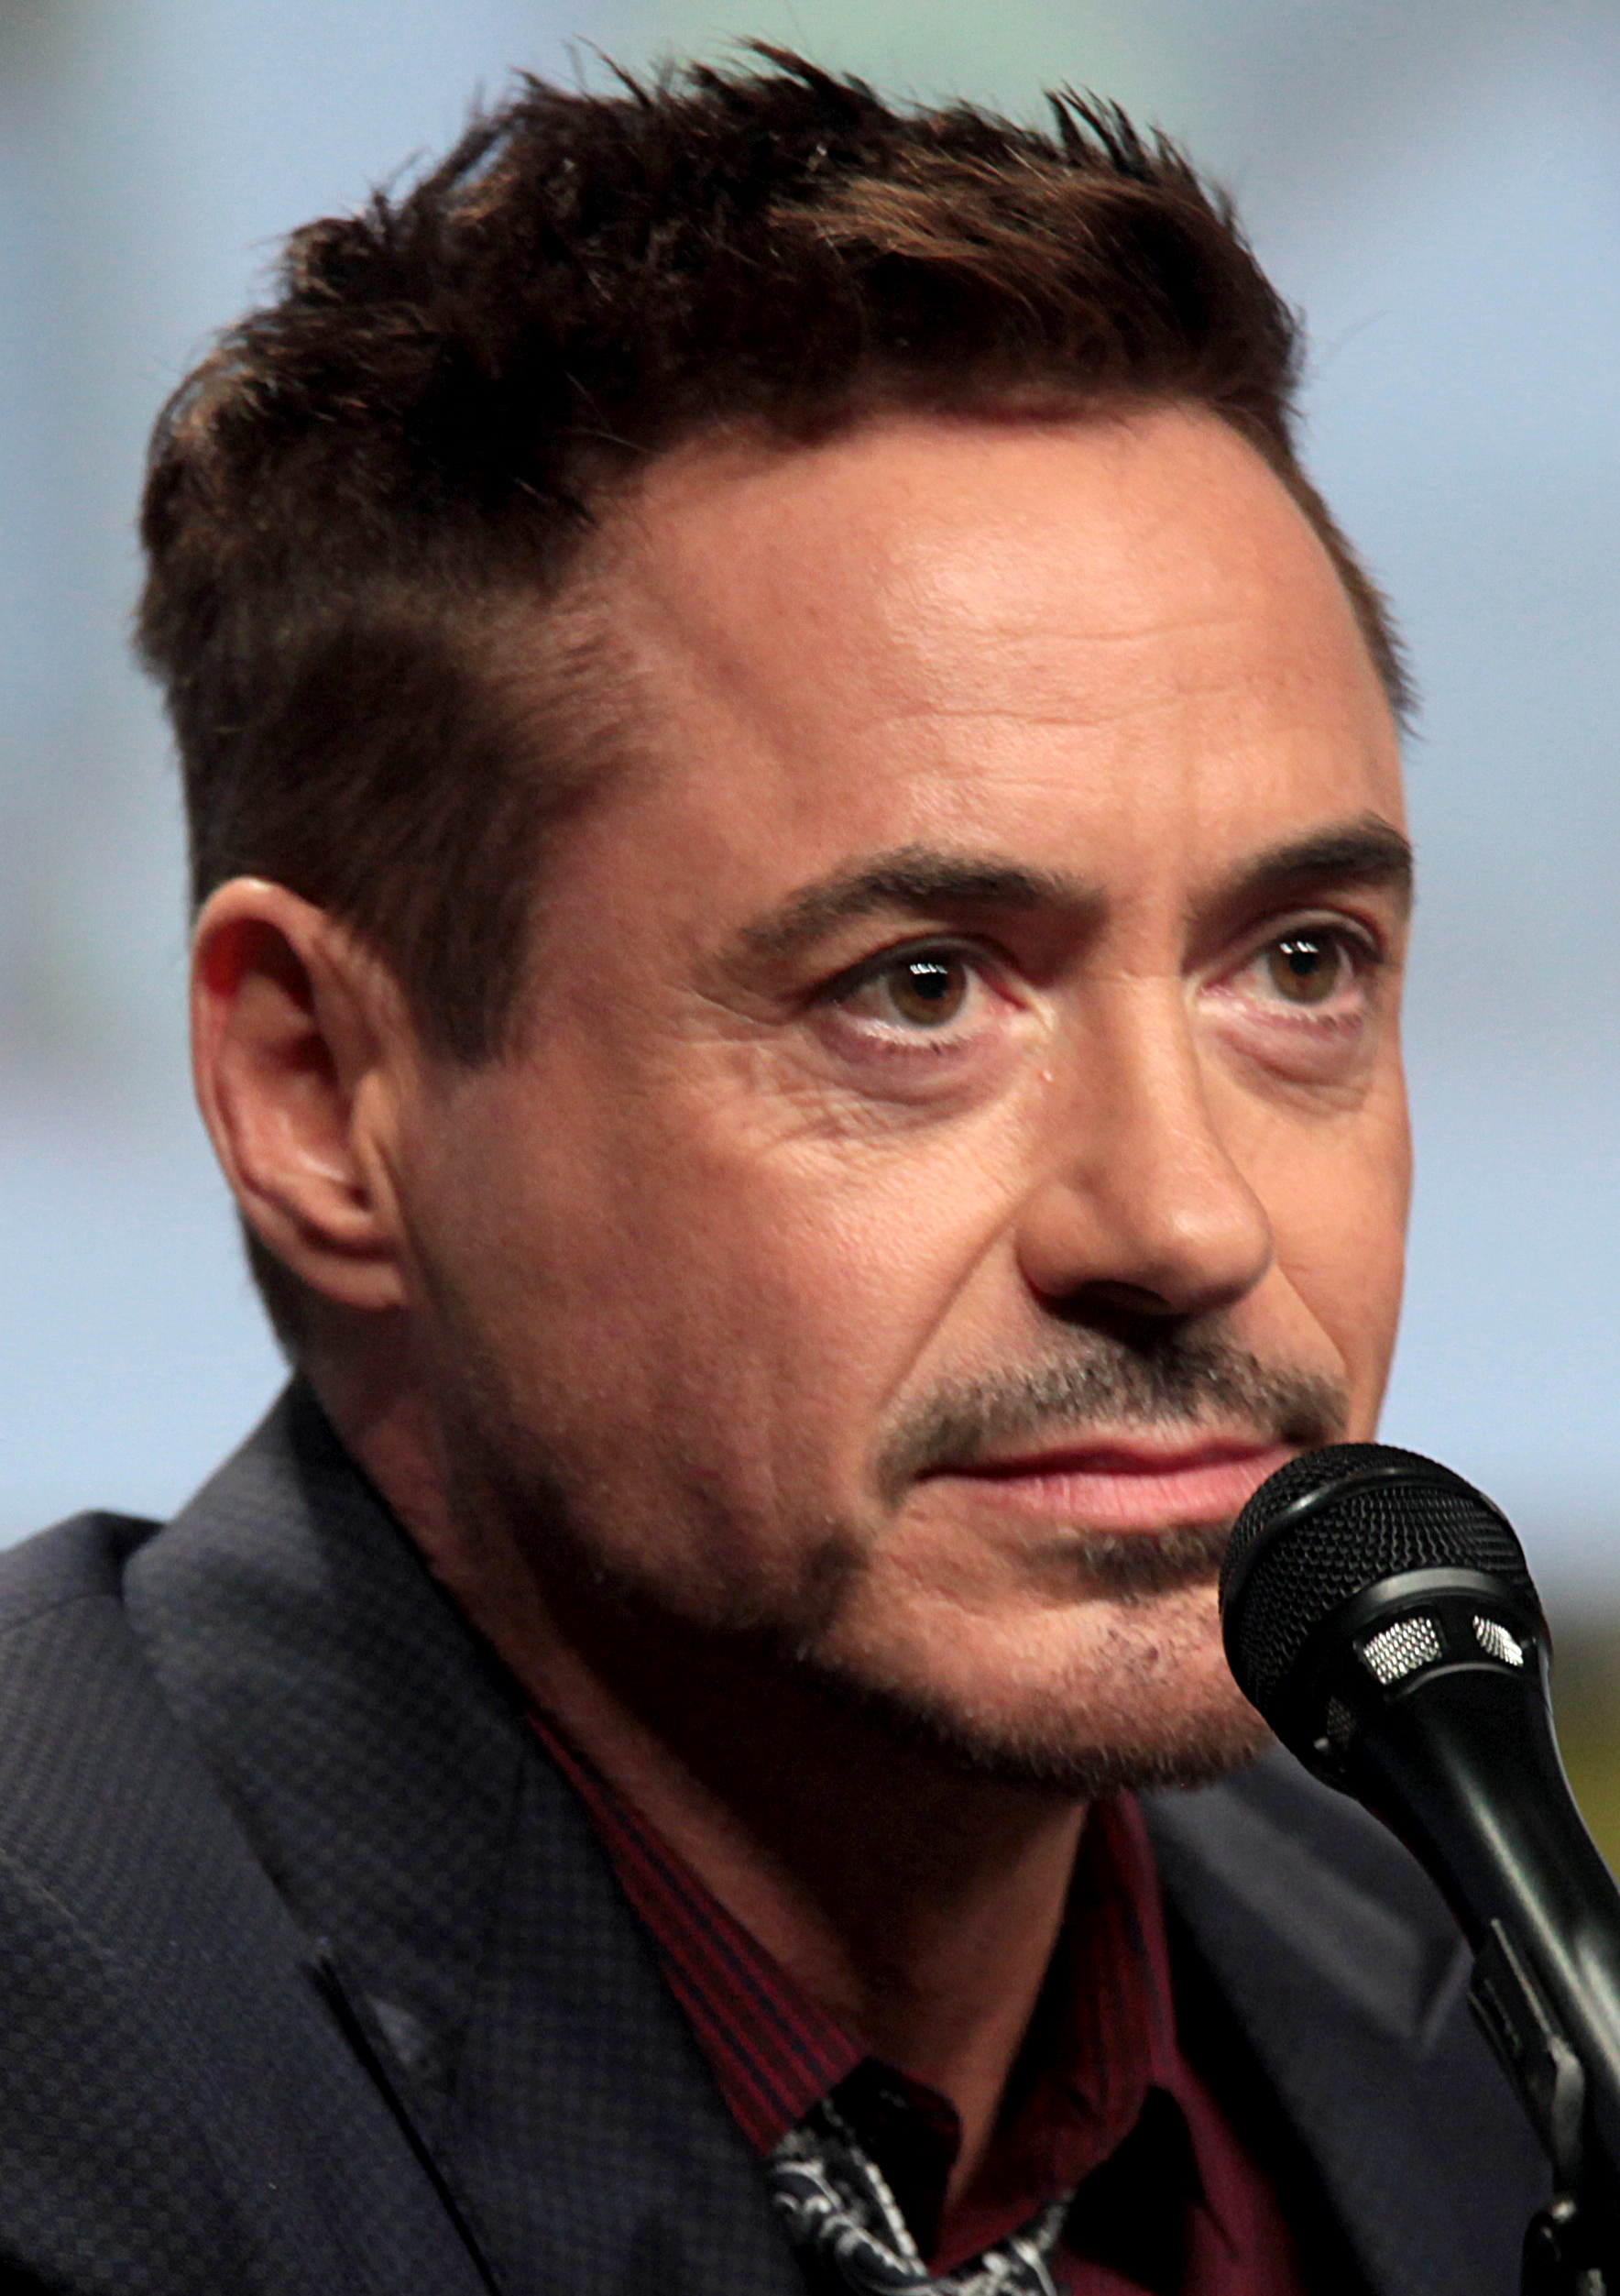 Robert Downey Jr. - Wikipedia Robert Downey